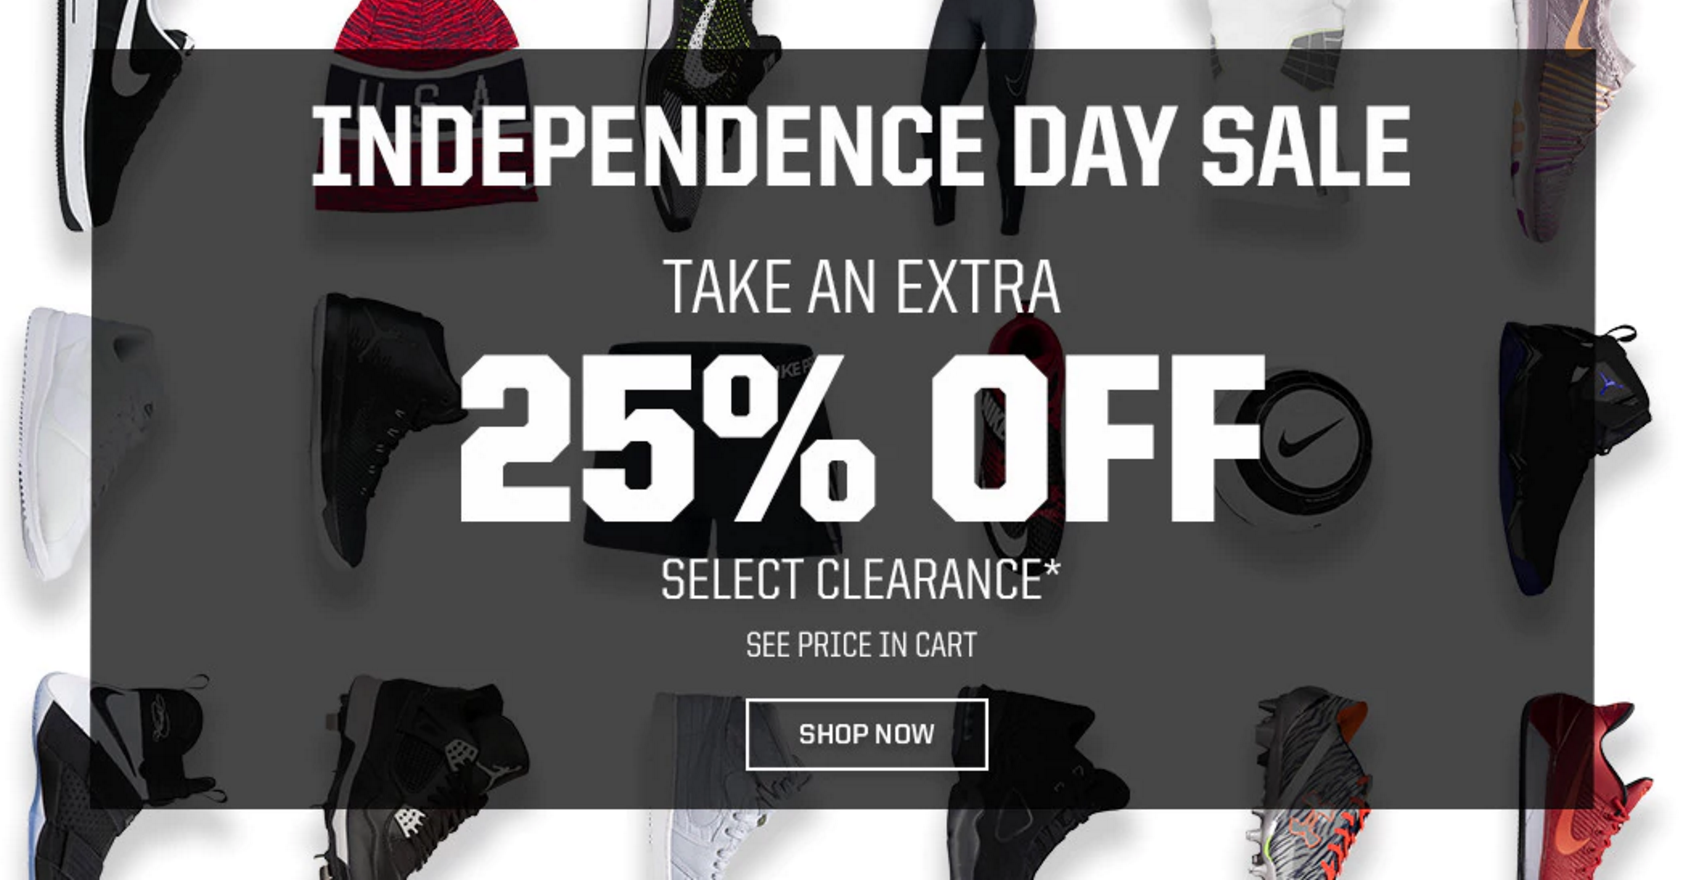 eastbay independence day sale